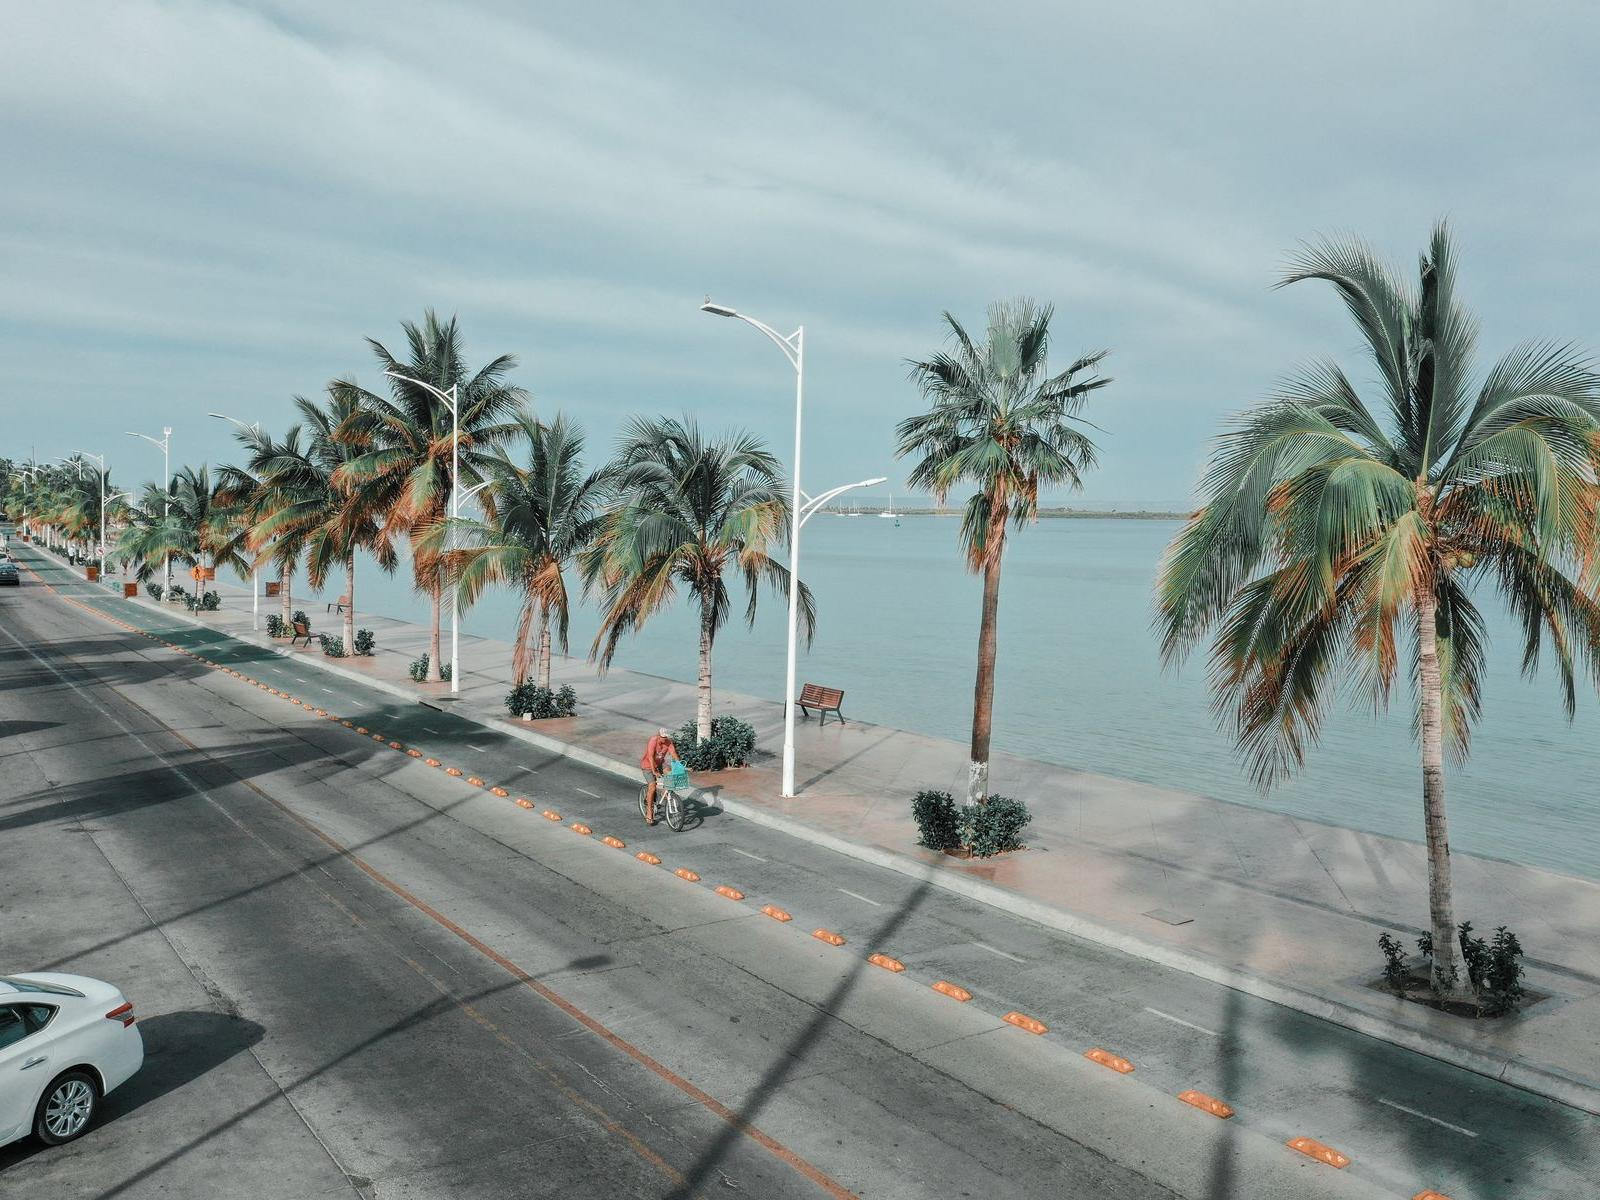 Road by the beach